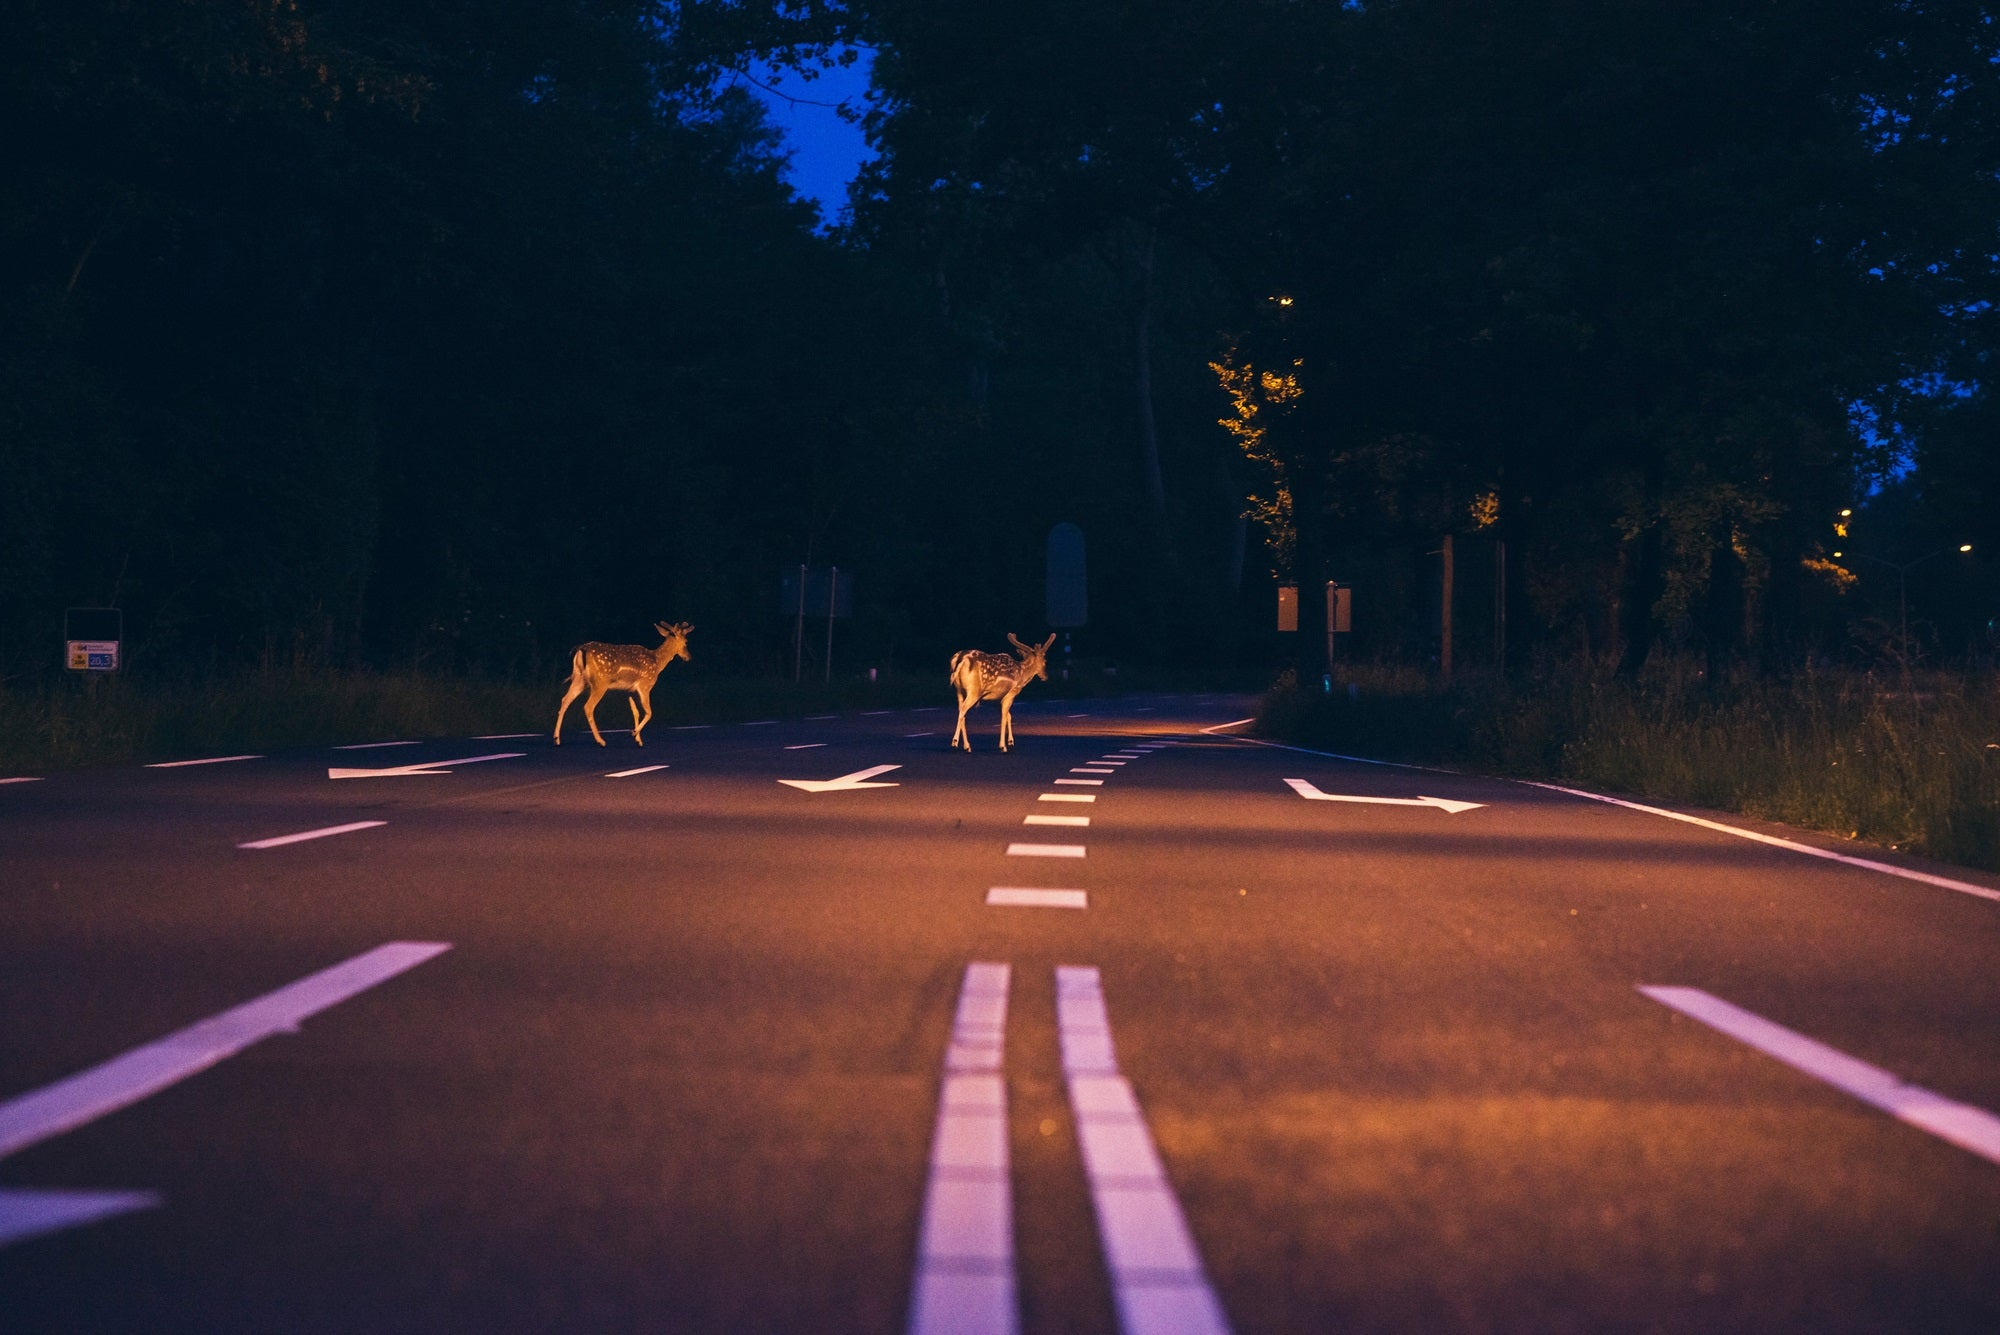 These are the days in the year you're more likely to hit a deer thumbnail